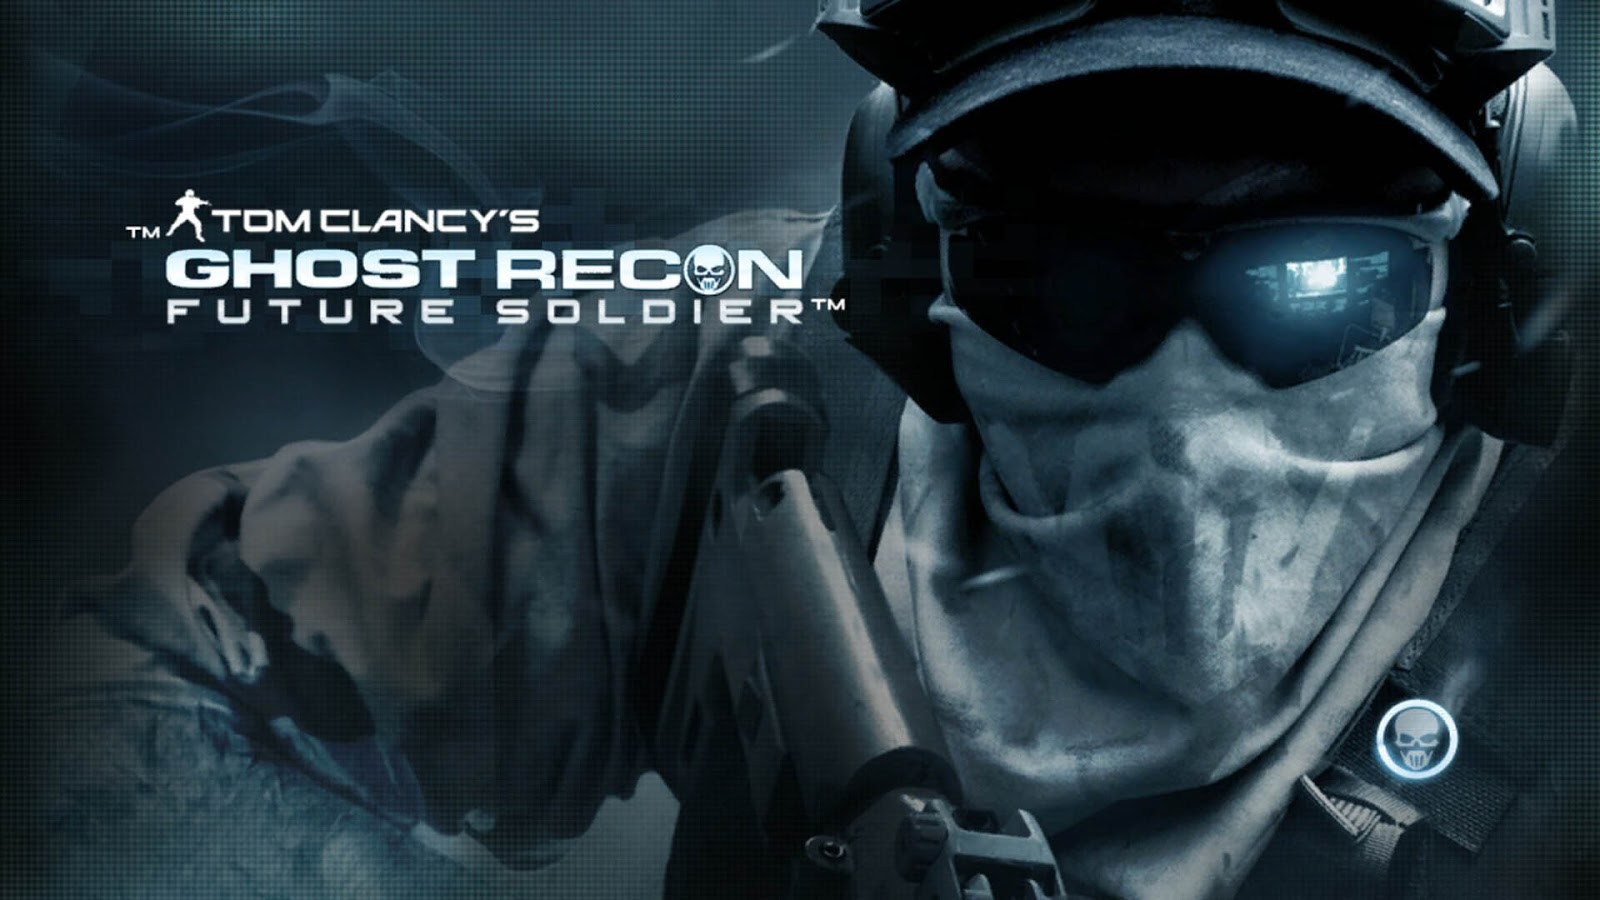 future soldier ghost recon wallpapers - 8 Ghost Recon Future Soldier HD Wallpapers Backgrounds